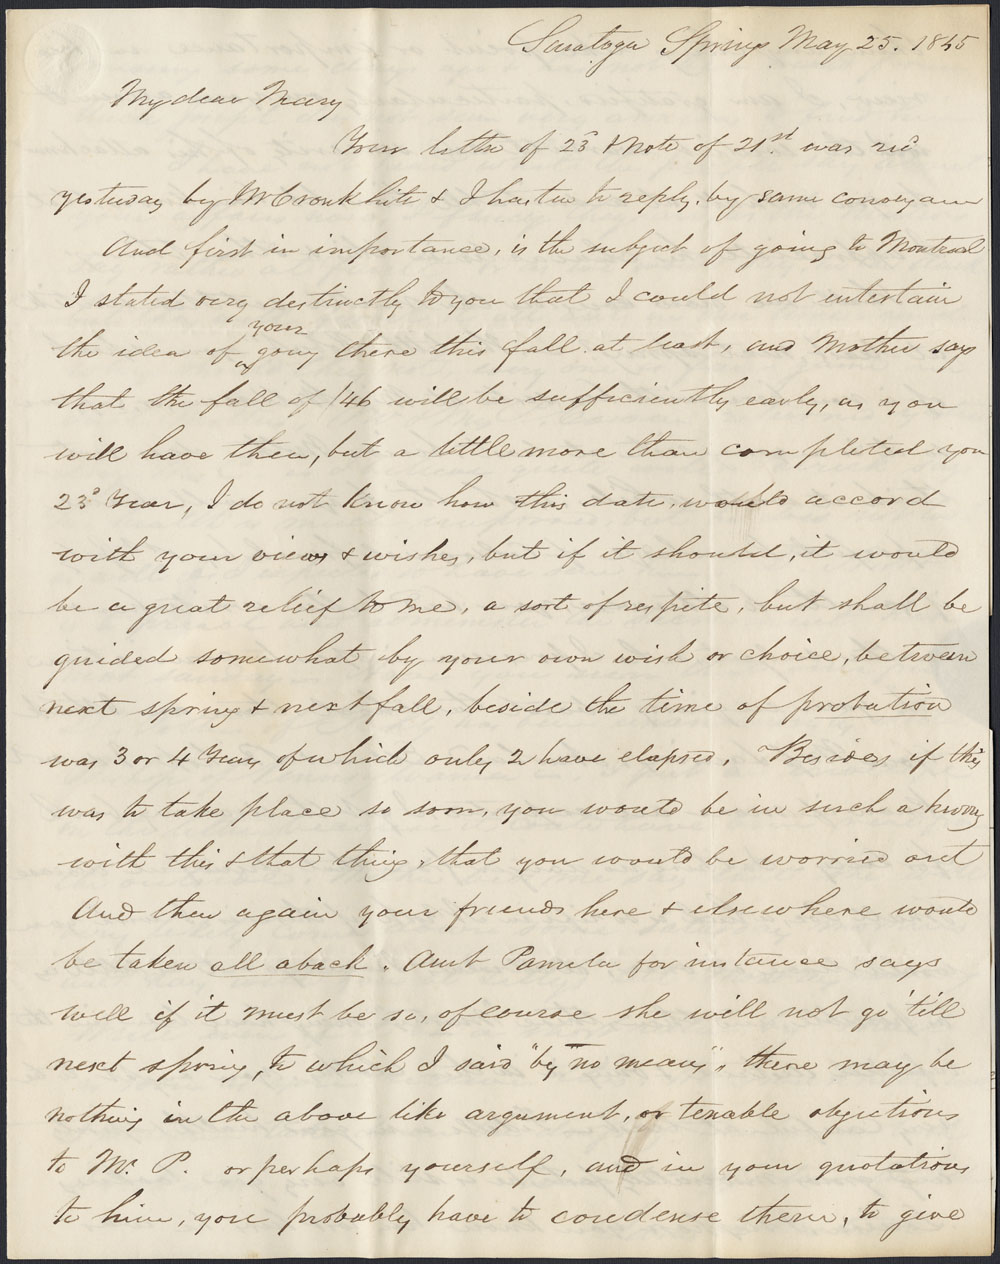 [Correspondance de Mary Westcott] 1845 . (item 9)